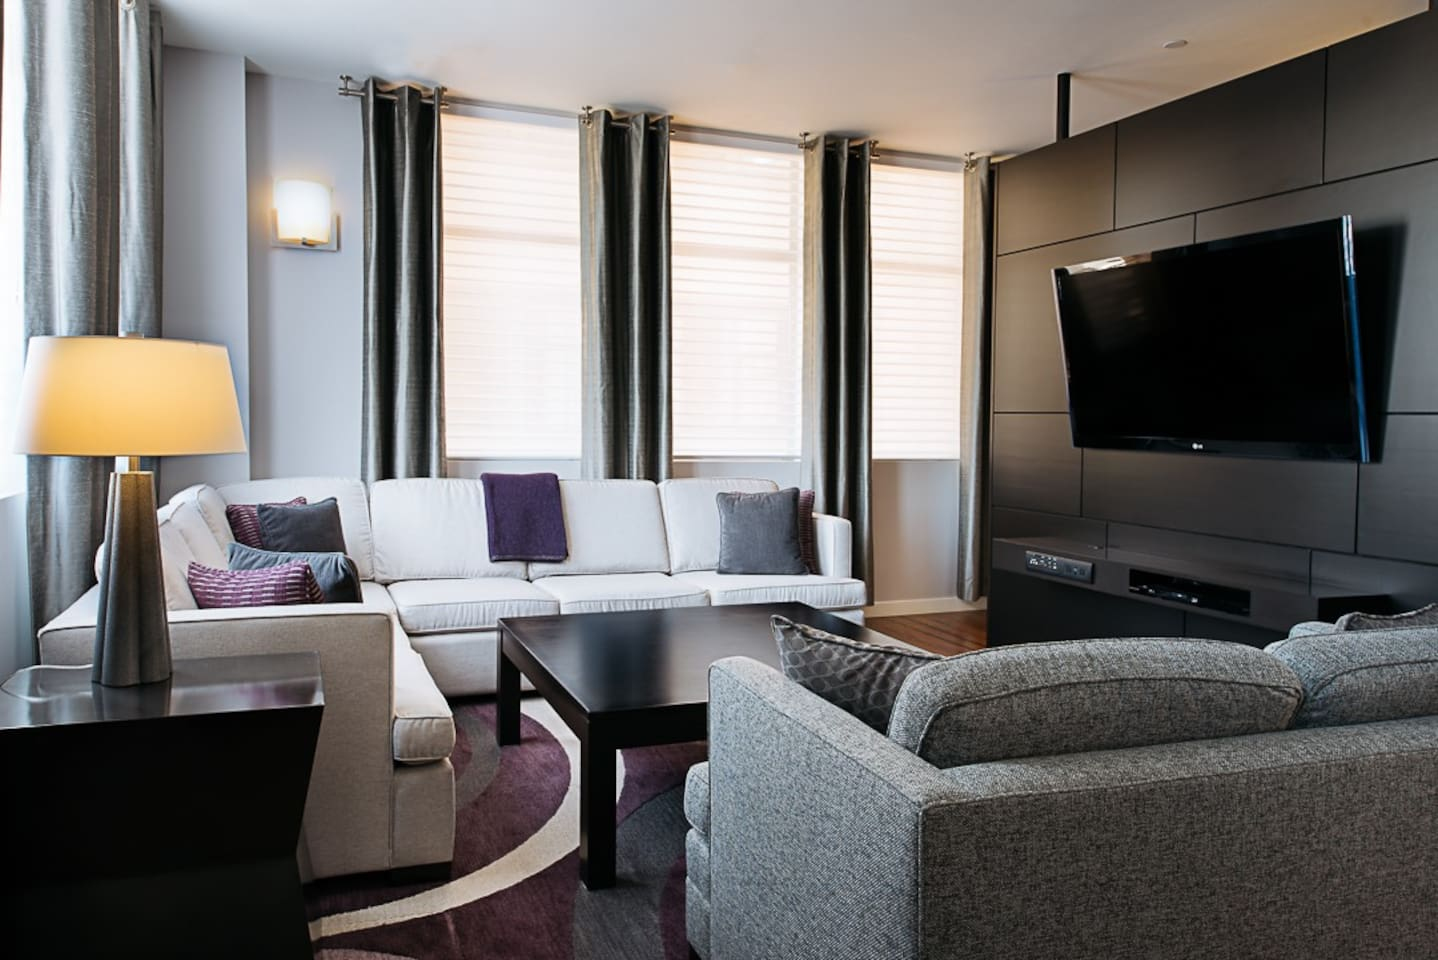 Plaza Suite living room